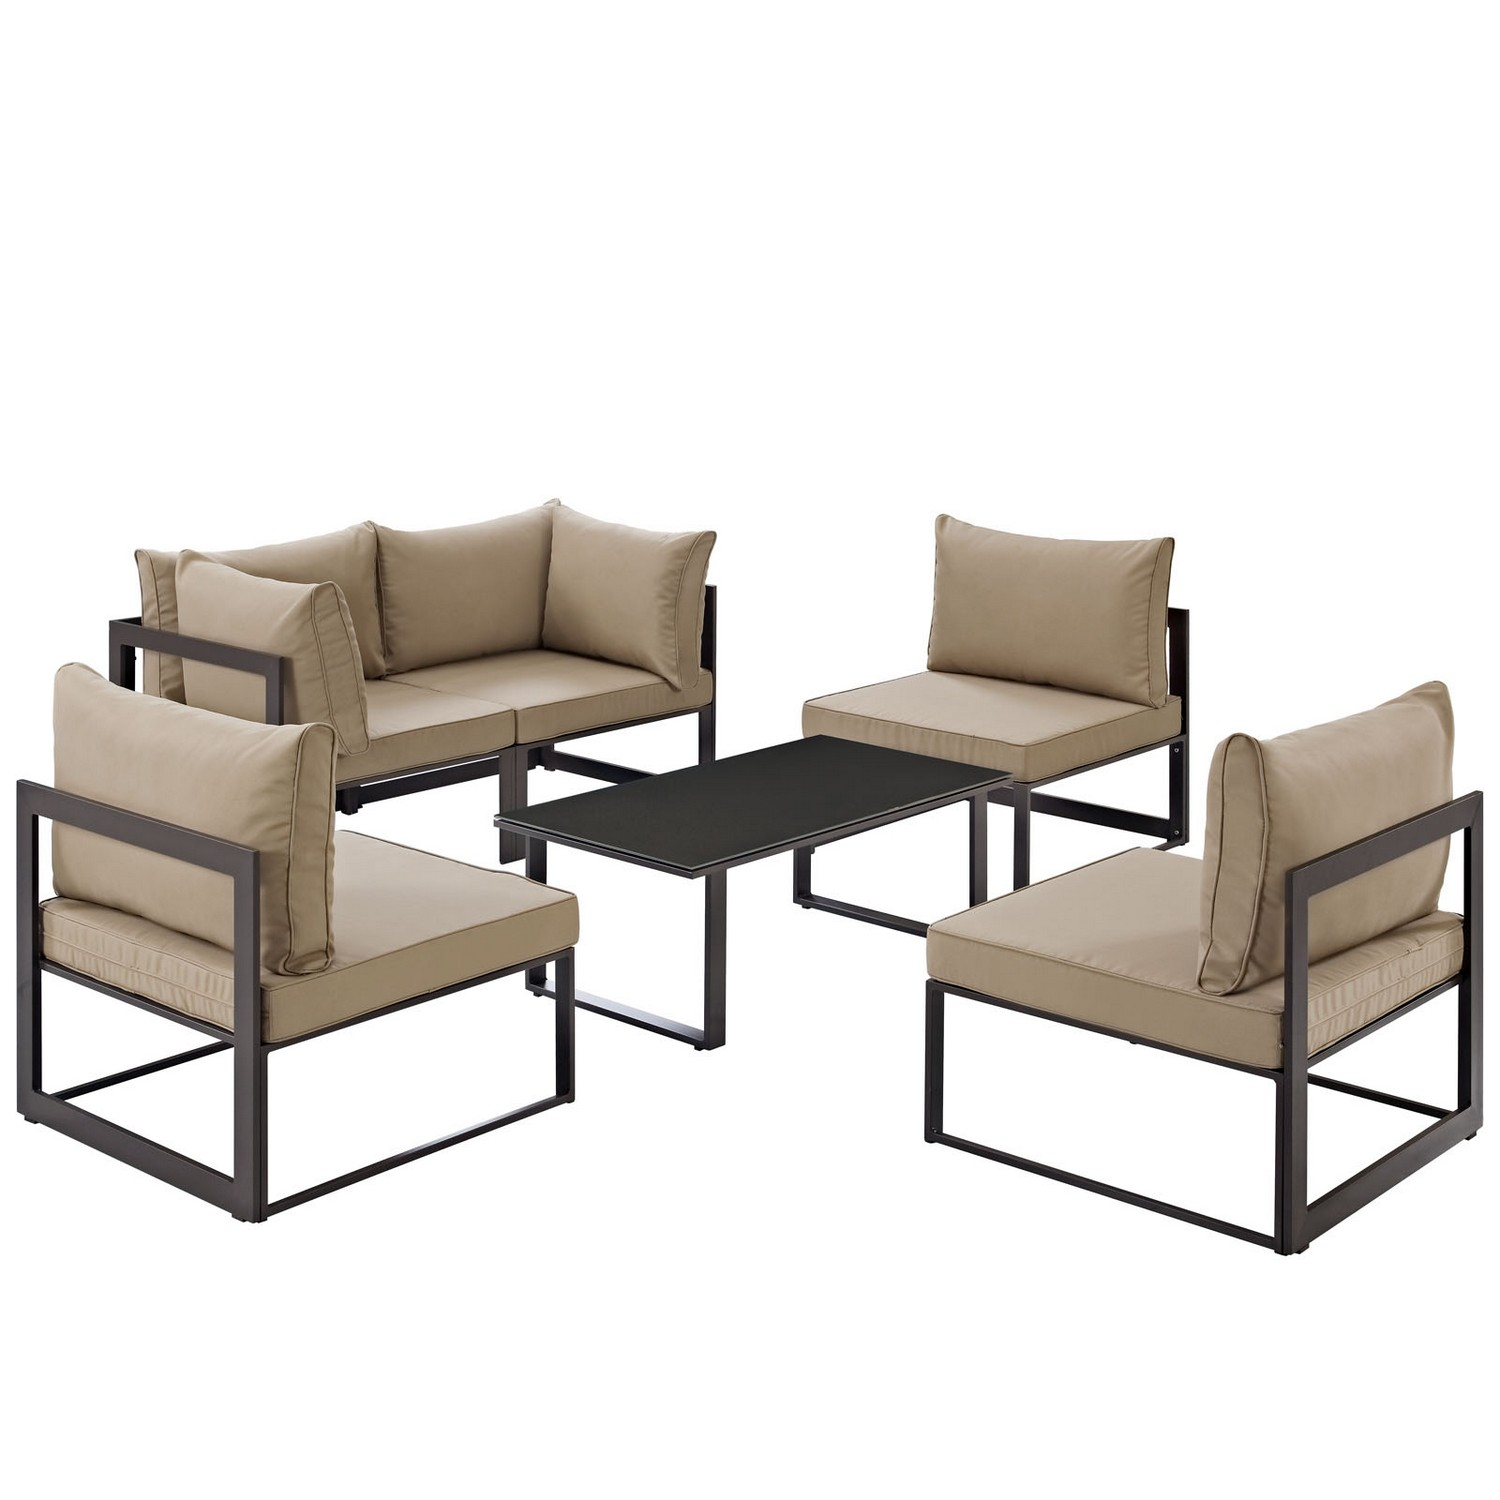 Modway Fortuna 6 Piece Outdoor Patio Sectional Sofa Set - Brown/Mocha